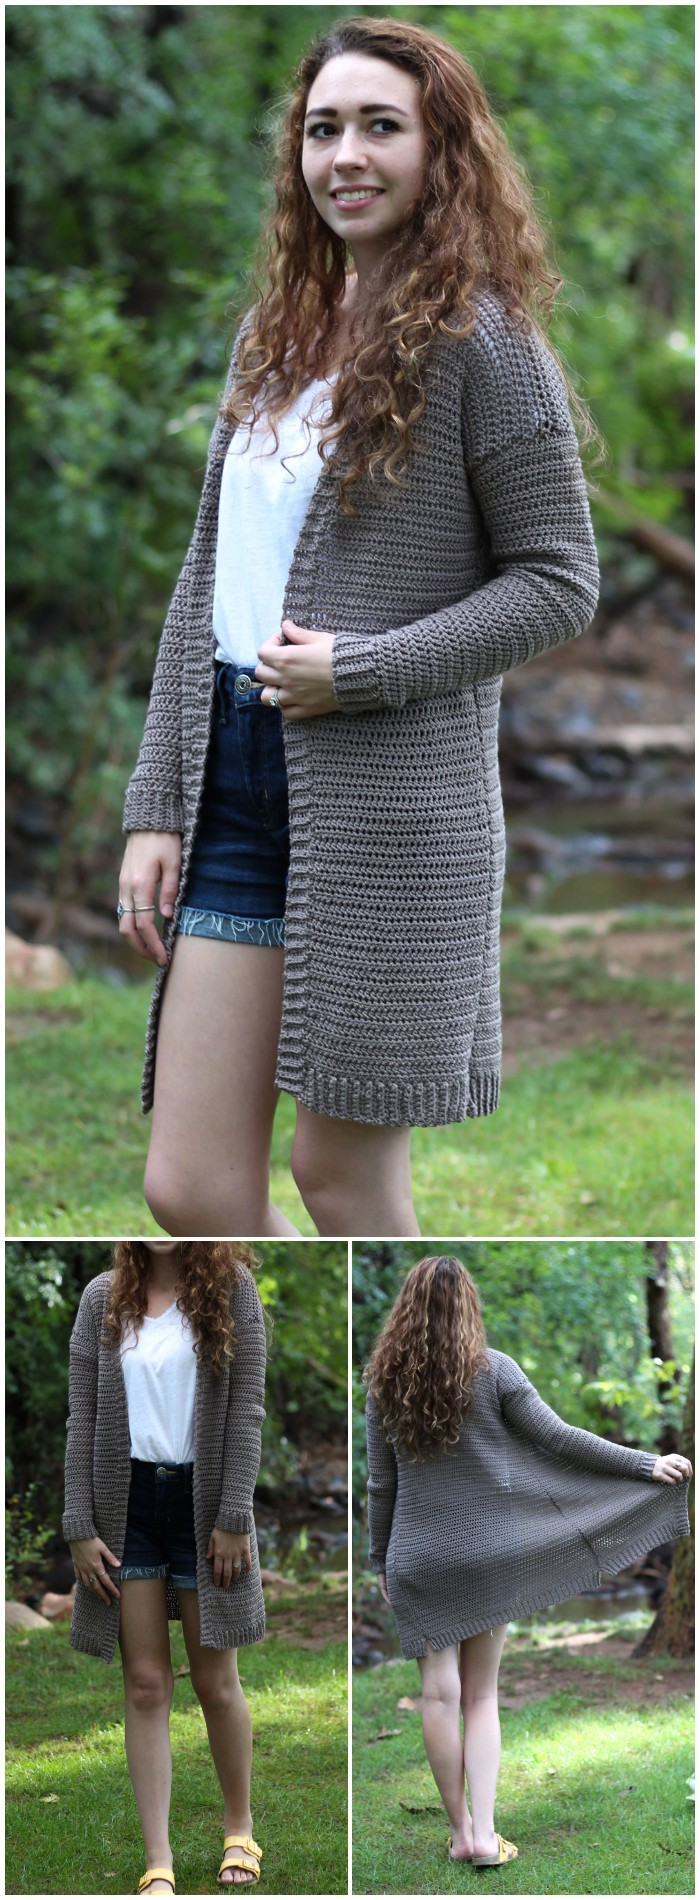 The Campfire Cardigan - Free Crochet Pattern